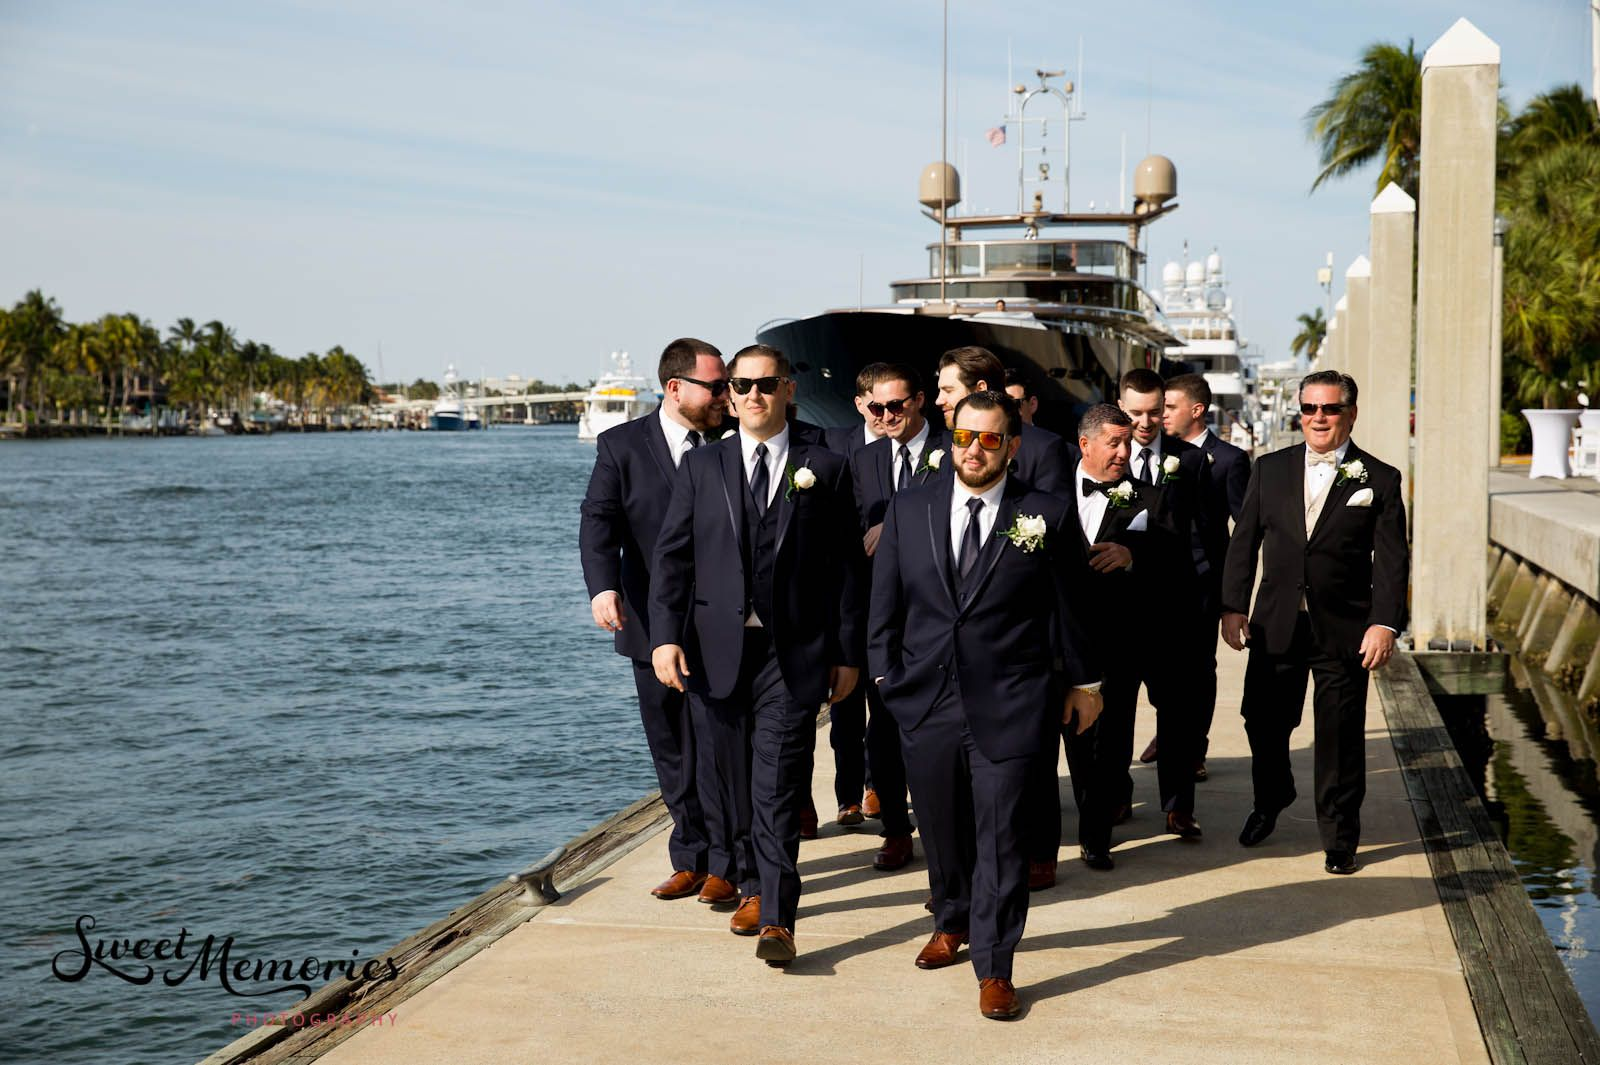 Classic Ivory And Navy Wedding At Bahia Mar In Fort Lauderdale Alexandra And Joseph In 2020 Fort Lauderdale Wedding Navy Wedding Lauderdale